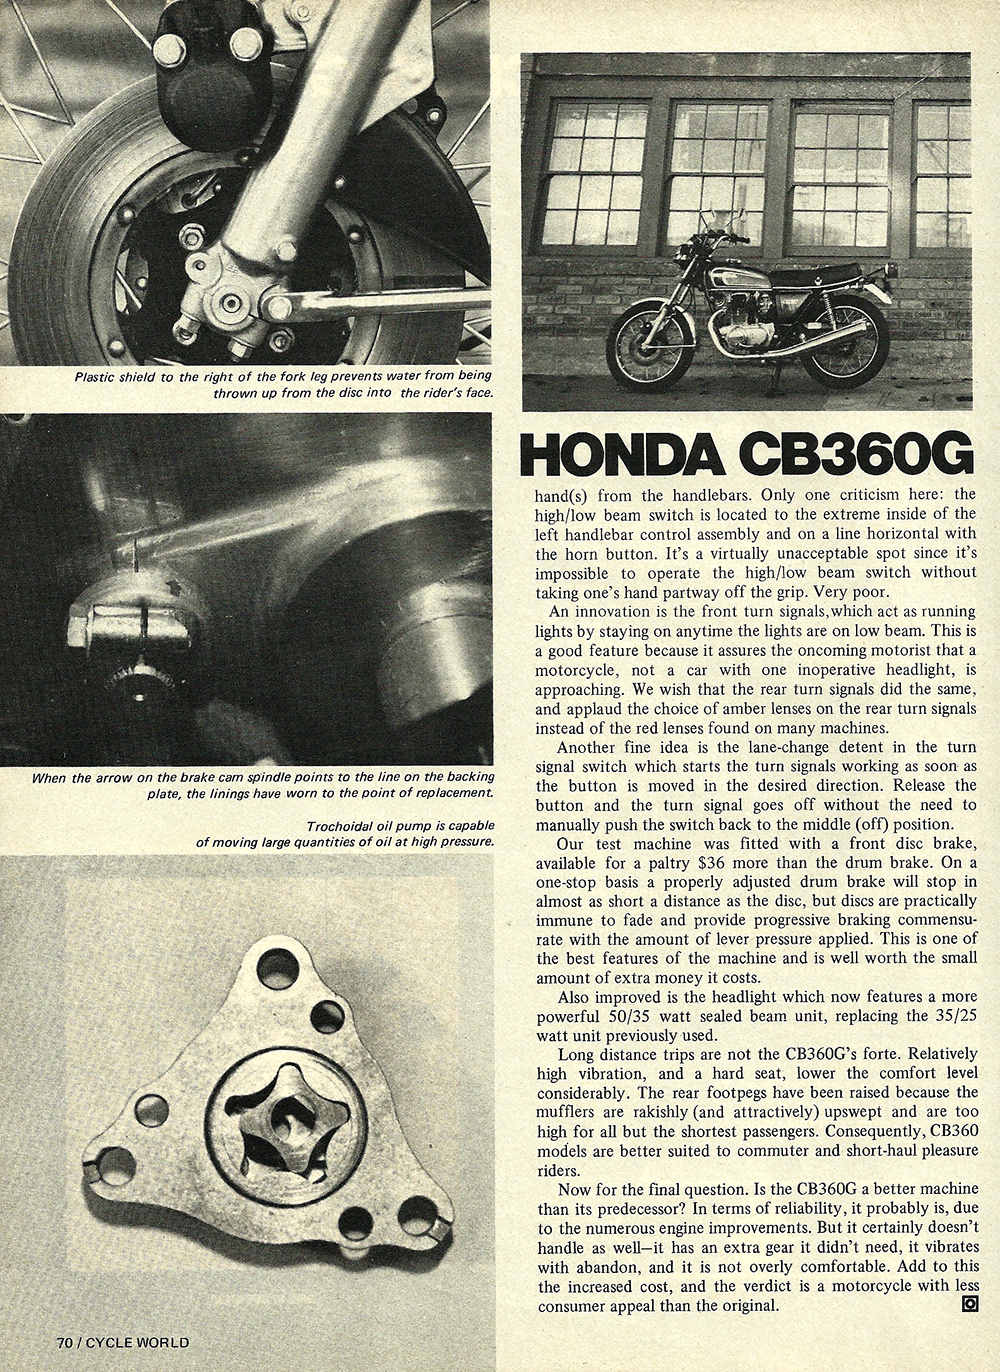 1974 Honda CB360G road test 4.jpg